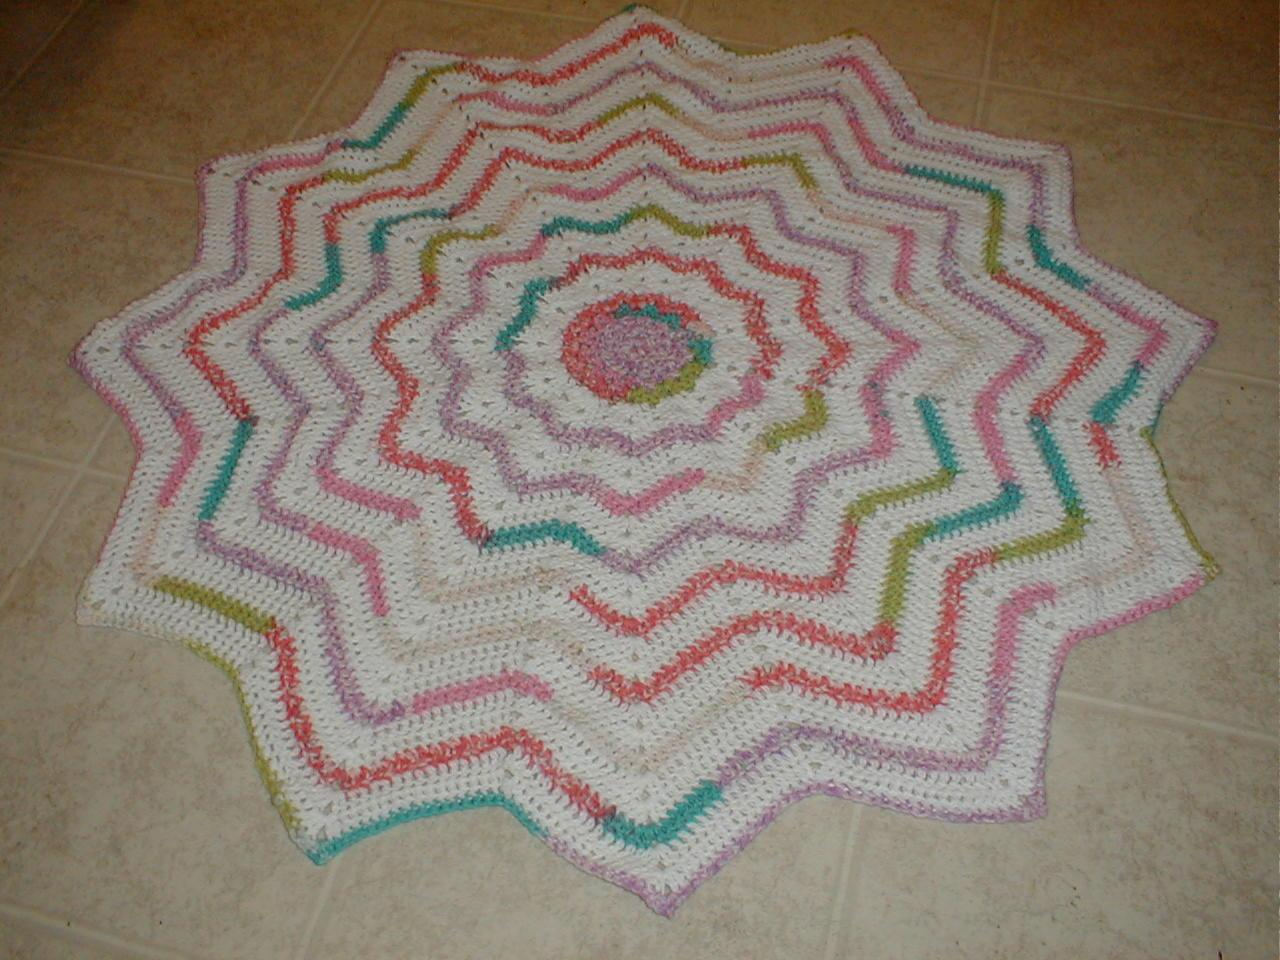 Crochet Pattern For Chevron Baby Afghan : Karens Crocheted Garden of Colors: 12-Point Round Ripple ...